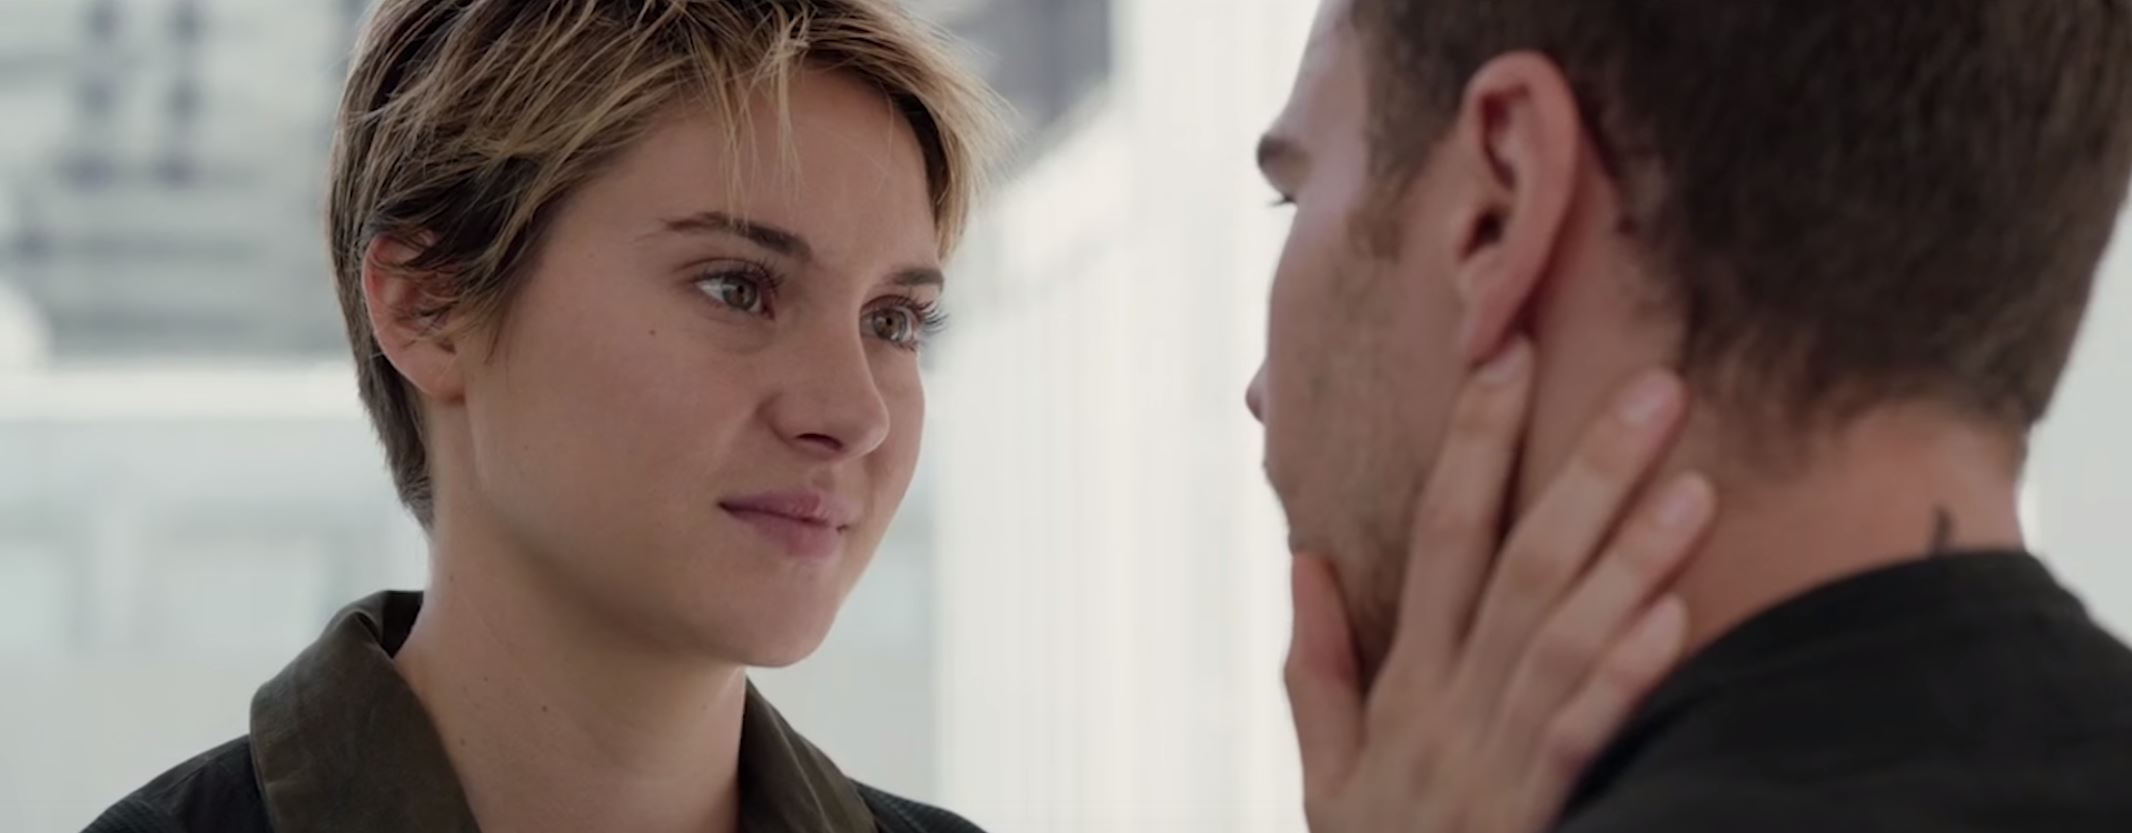 Honest Trailers - The Divergent Series: Insurgent